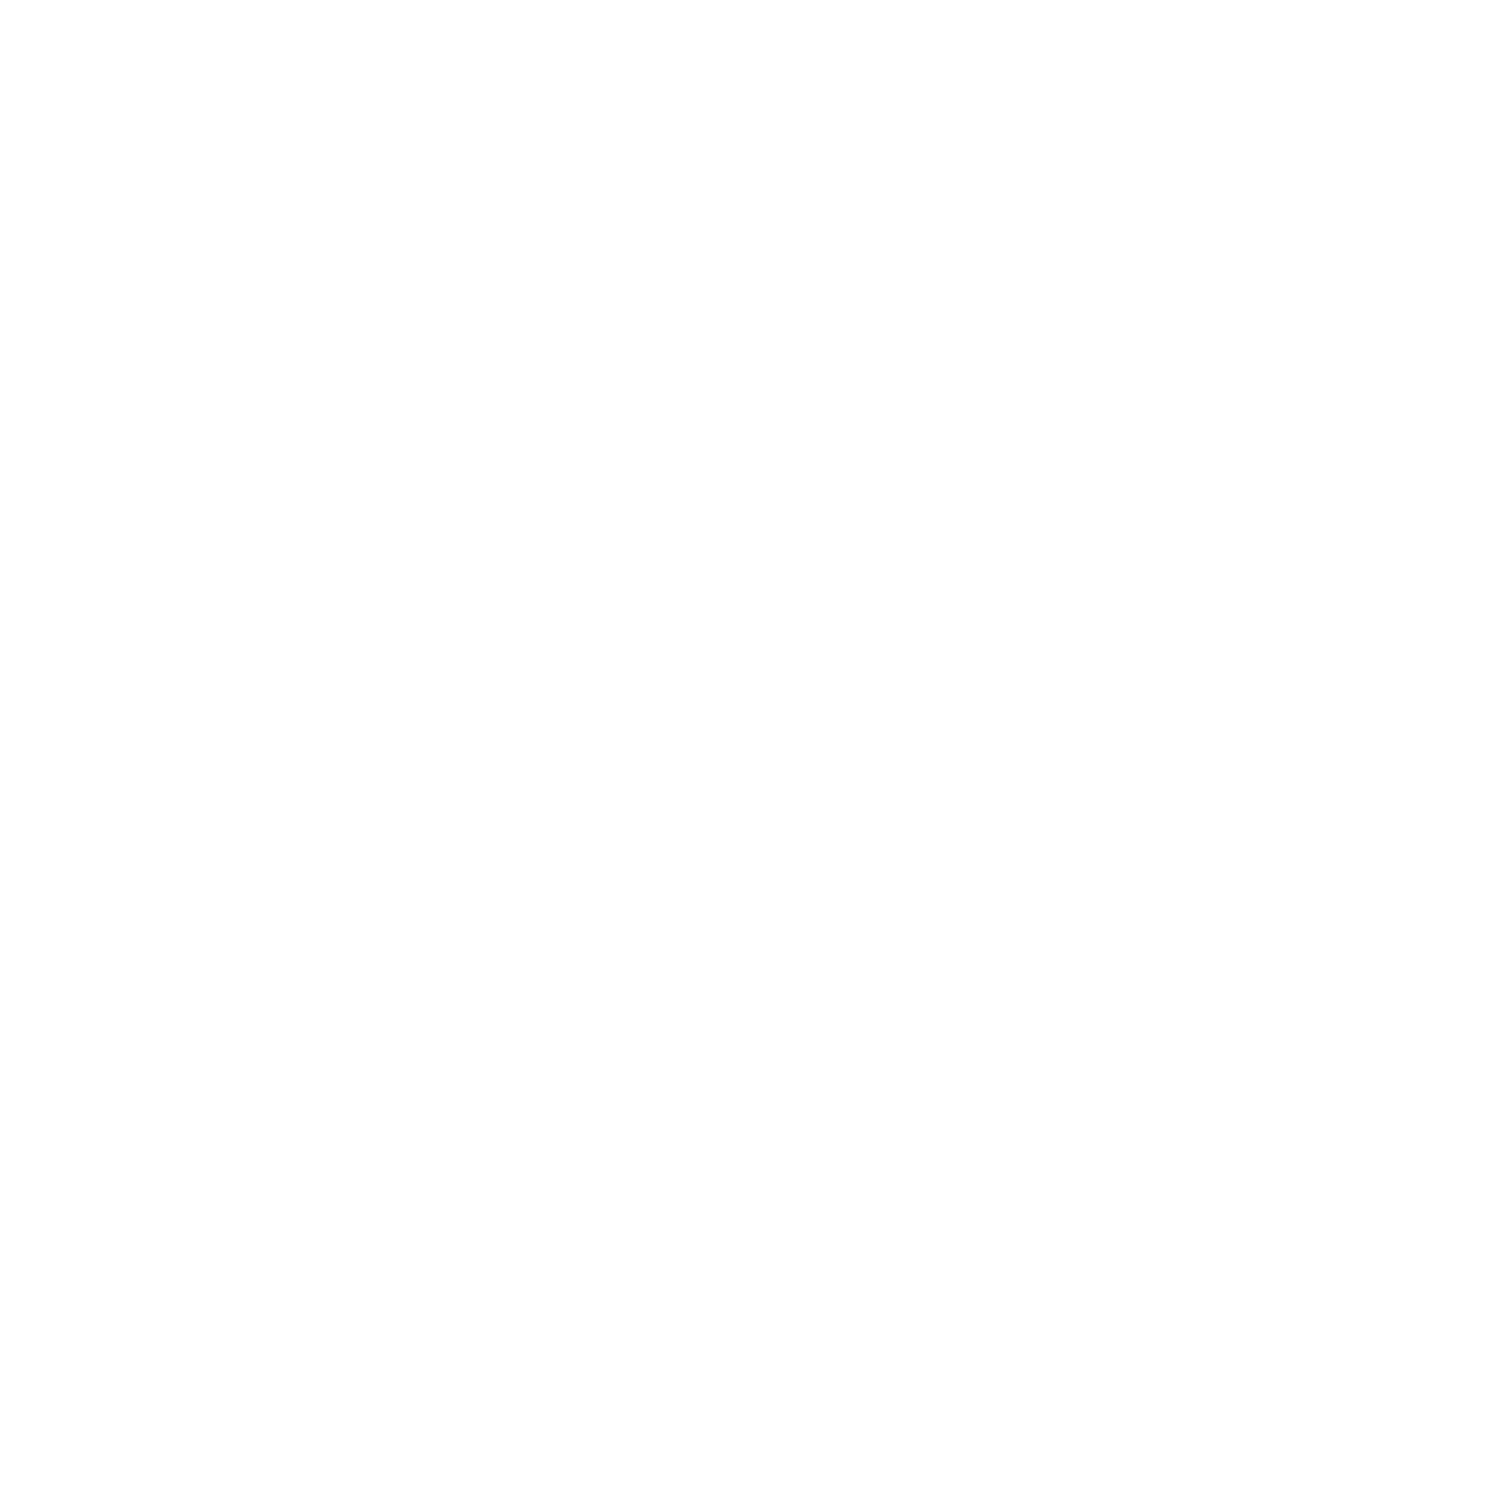 Beth's Twin Bluffs Cafe